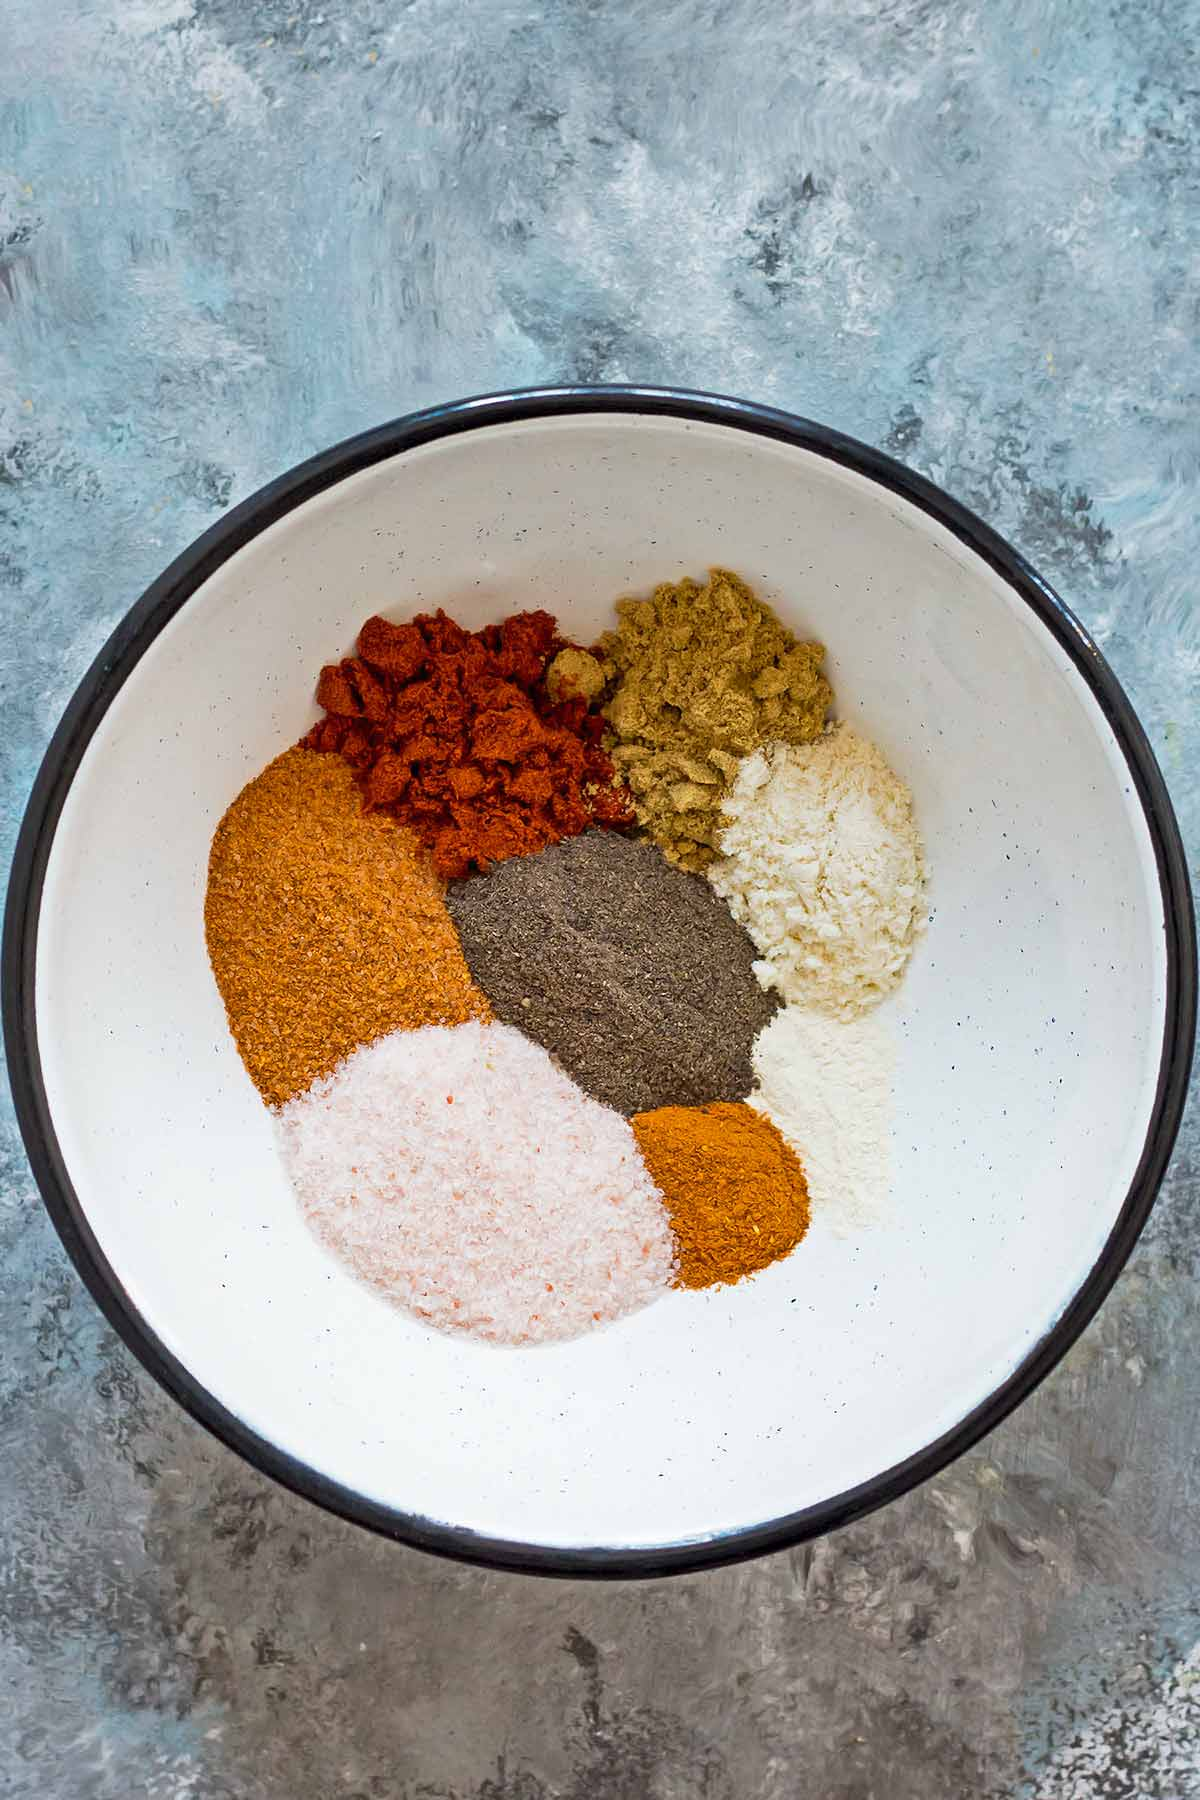 Bowl of individual spices for chili seasoning before mixing